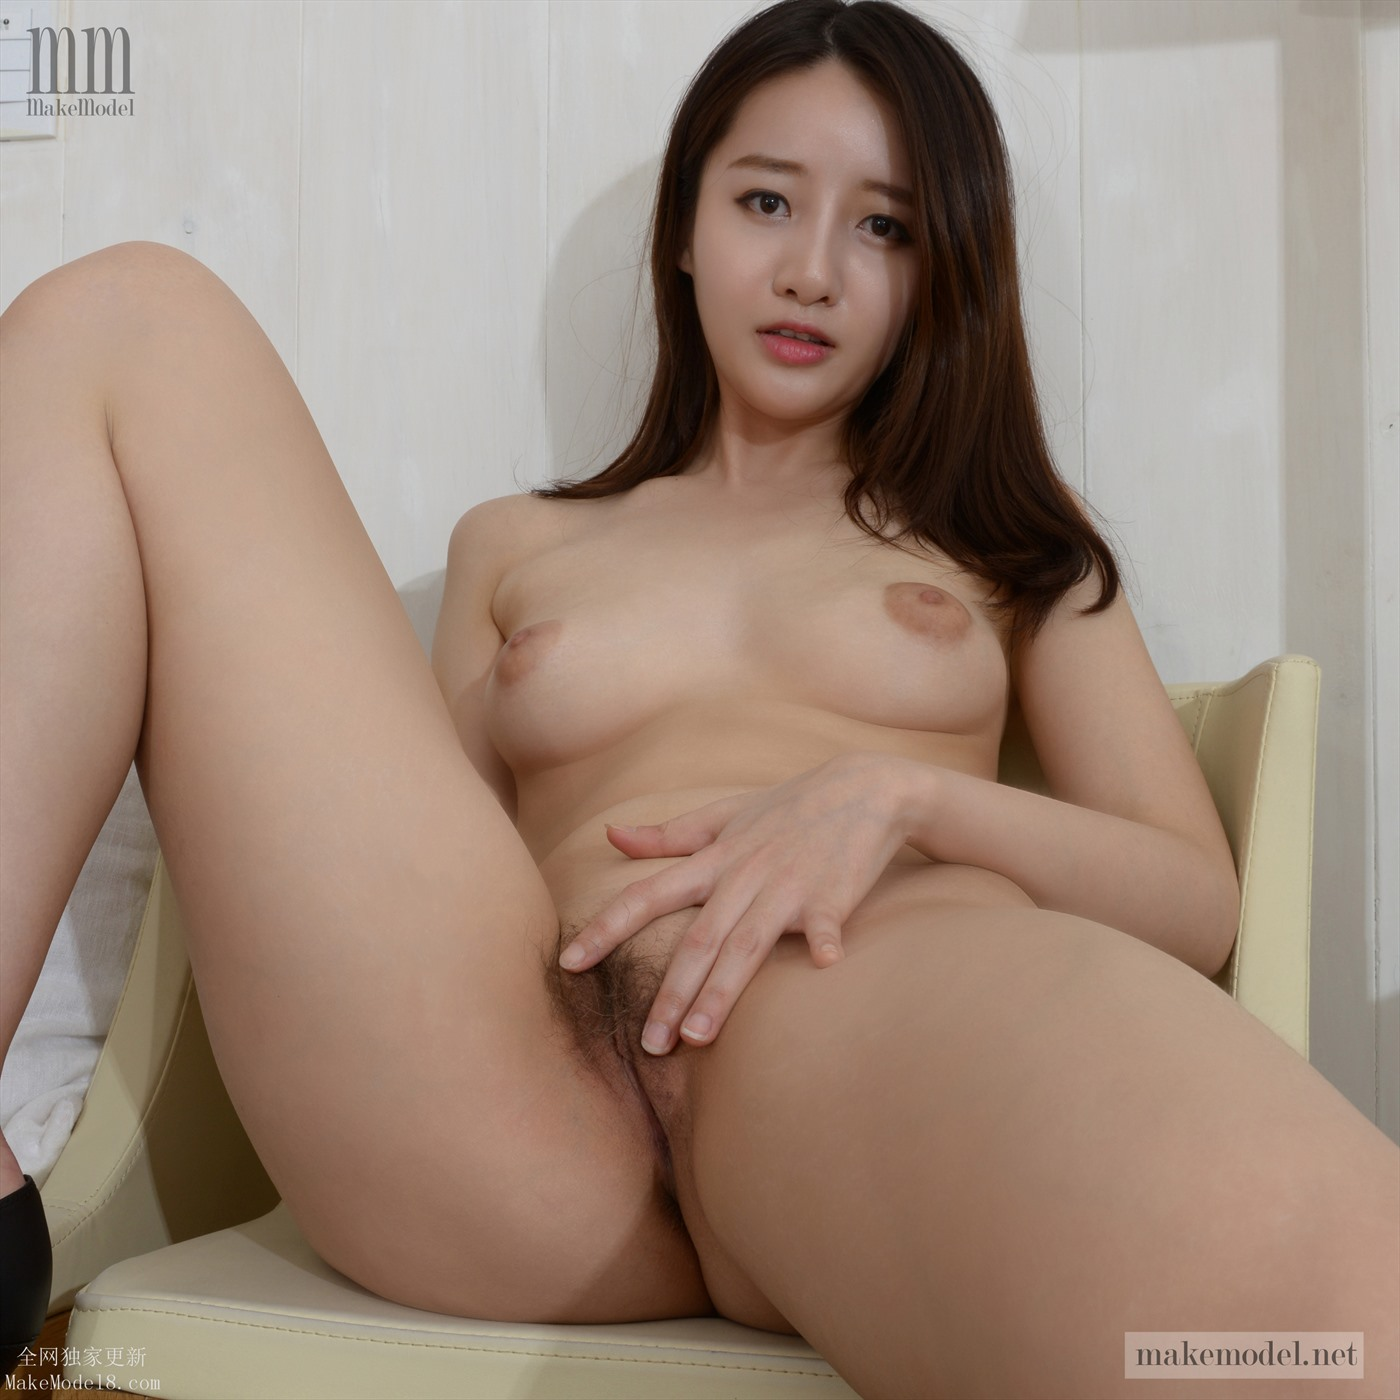 Korean porno web site